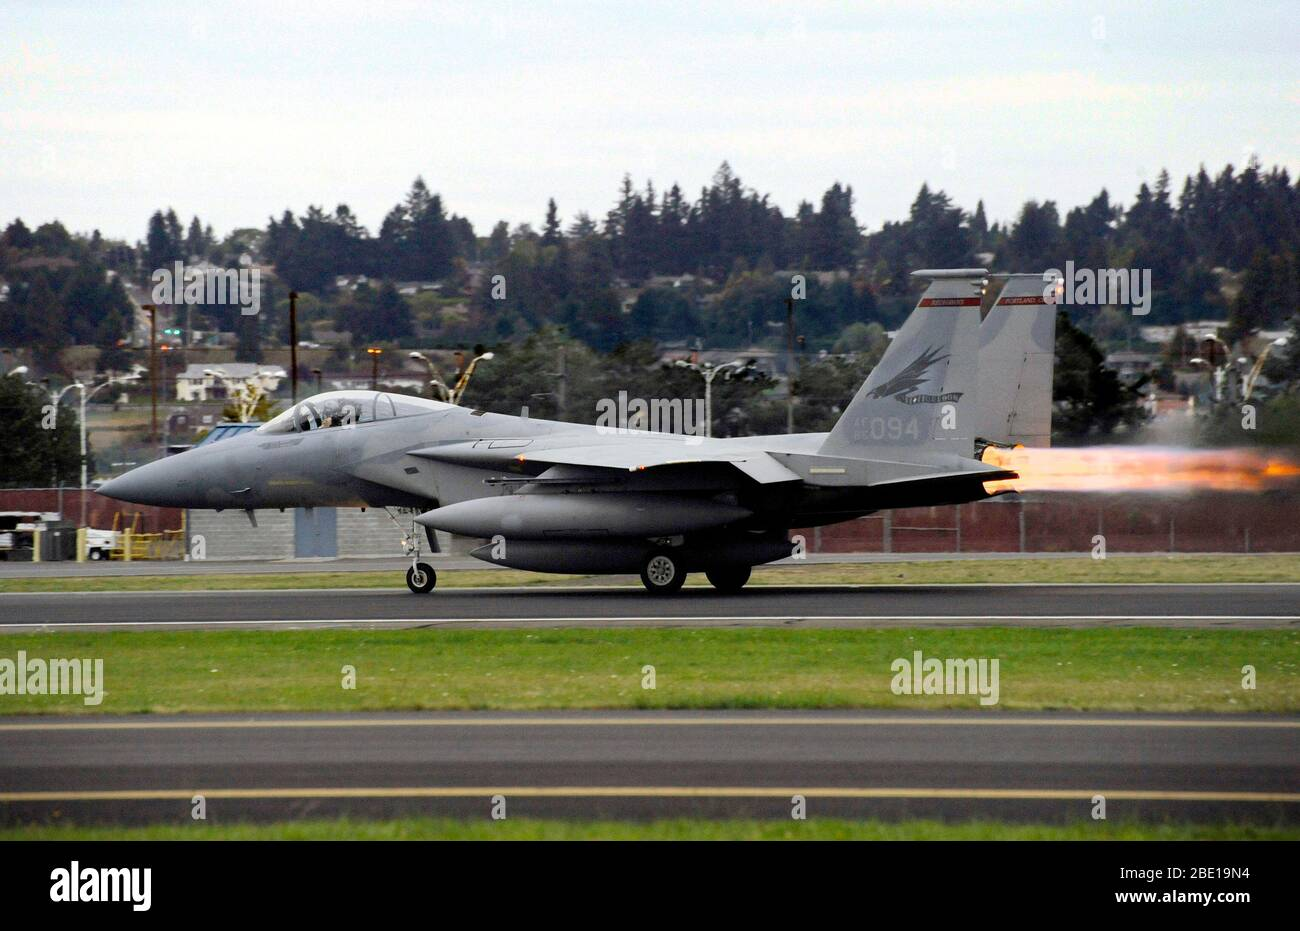 An Oregon Air National Guard F-15C Eagle takes off from the Portland Air National Guard Base Oct. 2, 2010. Stock Photo